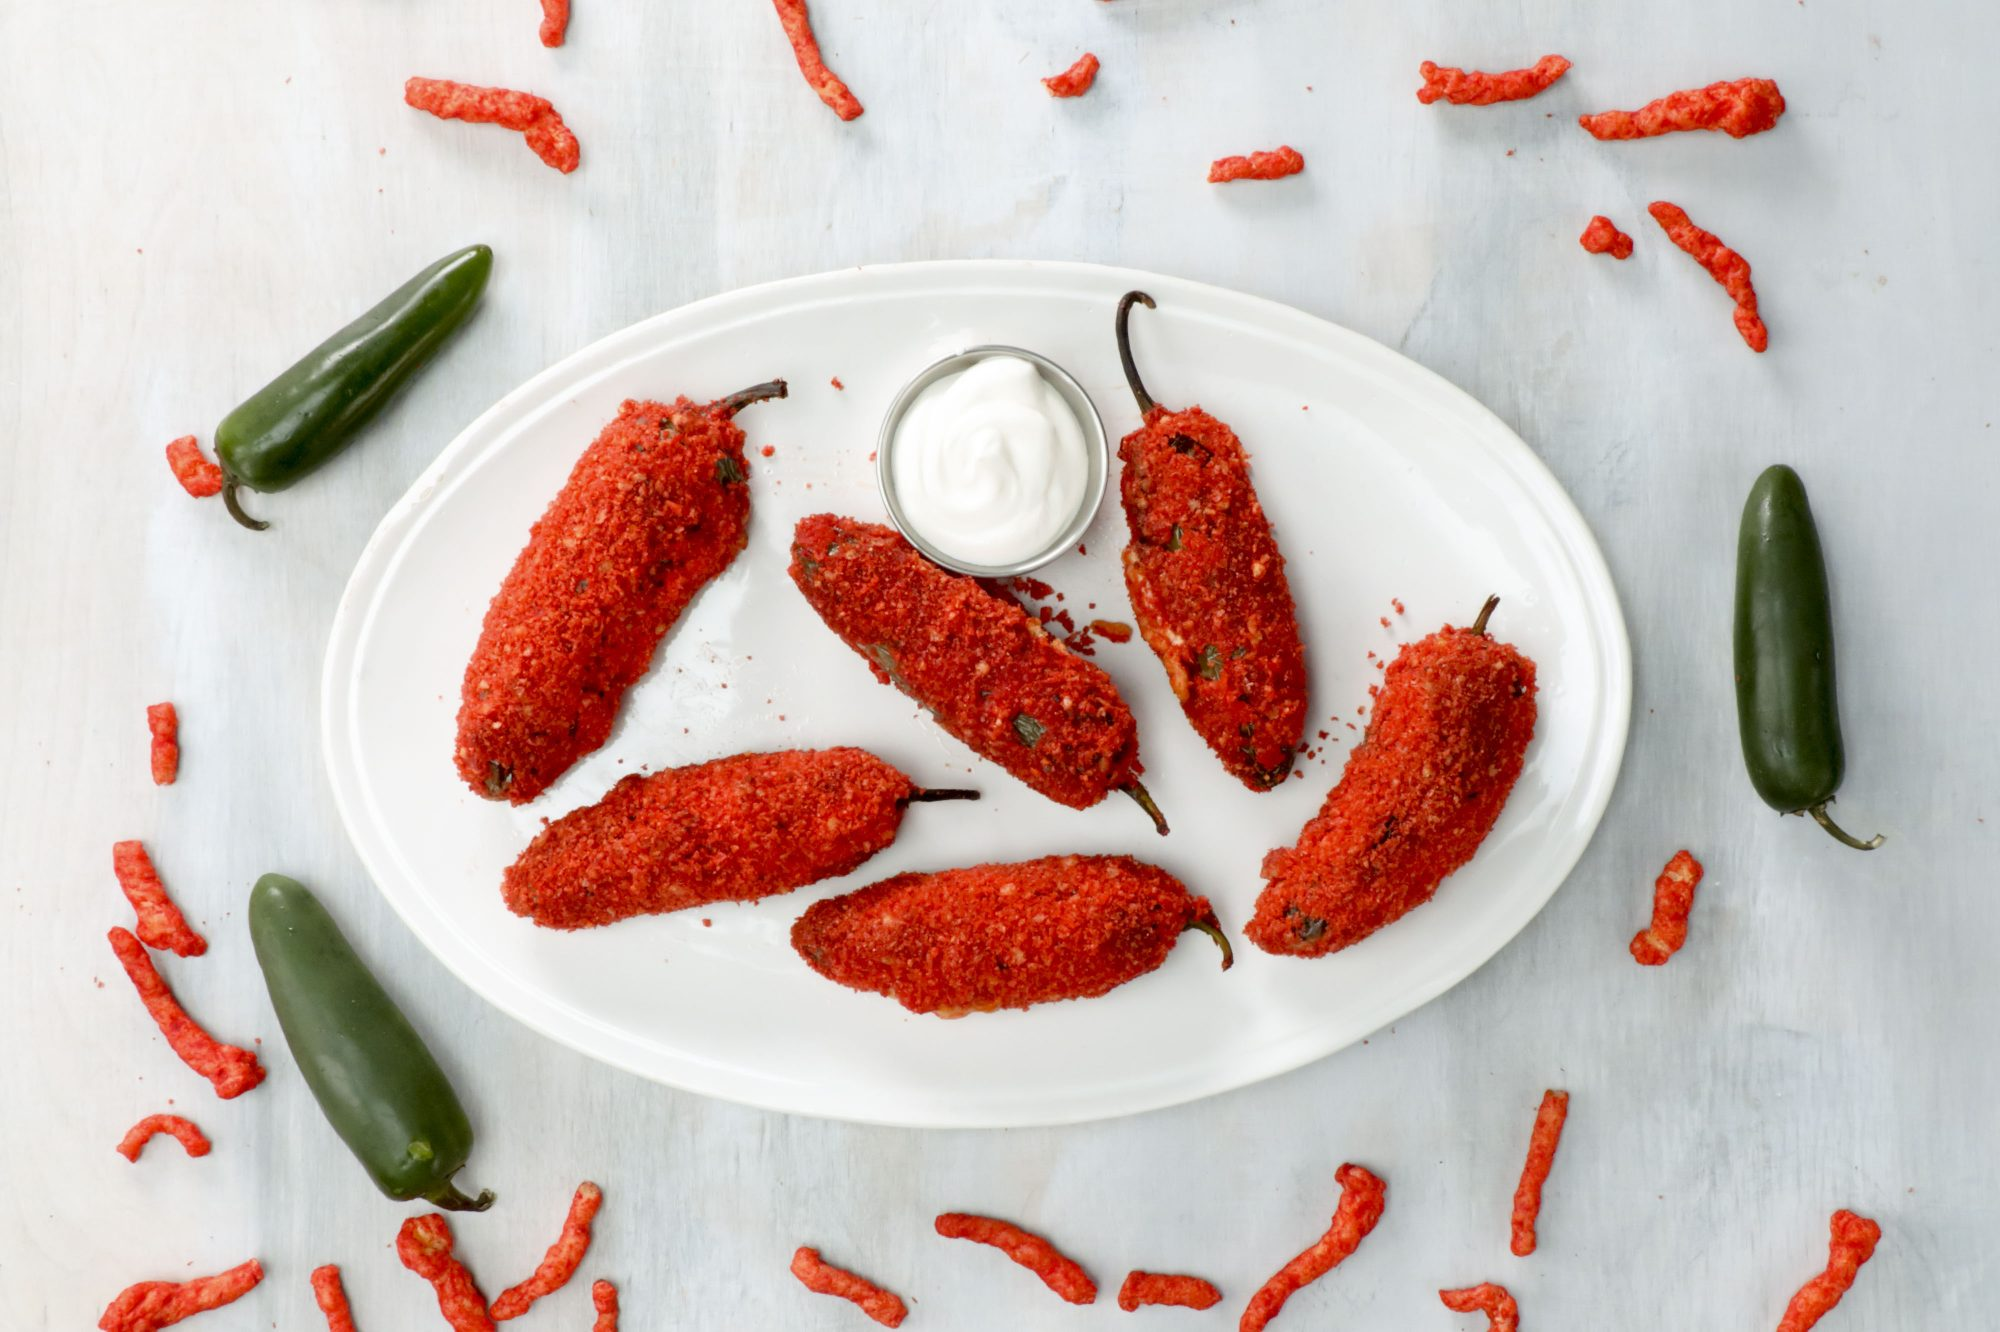 Flamin' Hot Cheetos Stuffed Jalapeños image